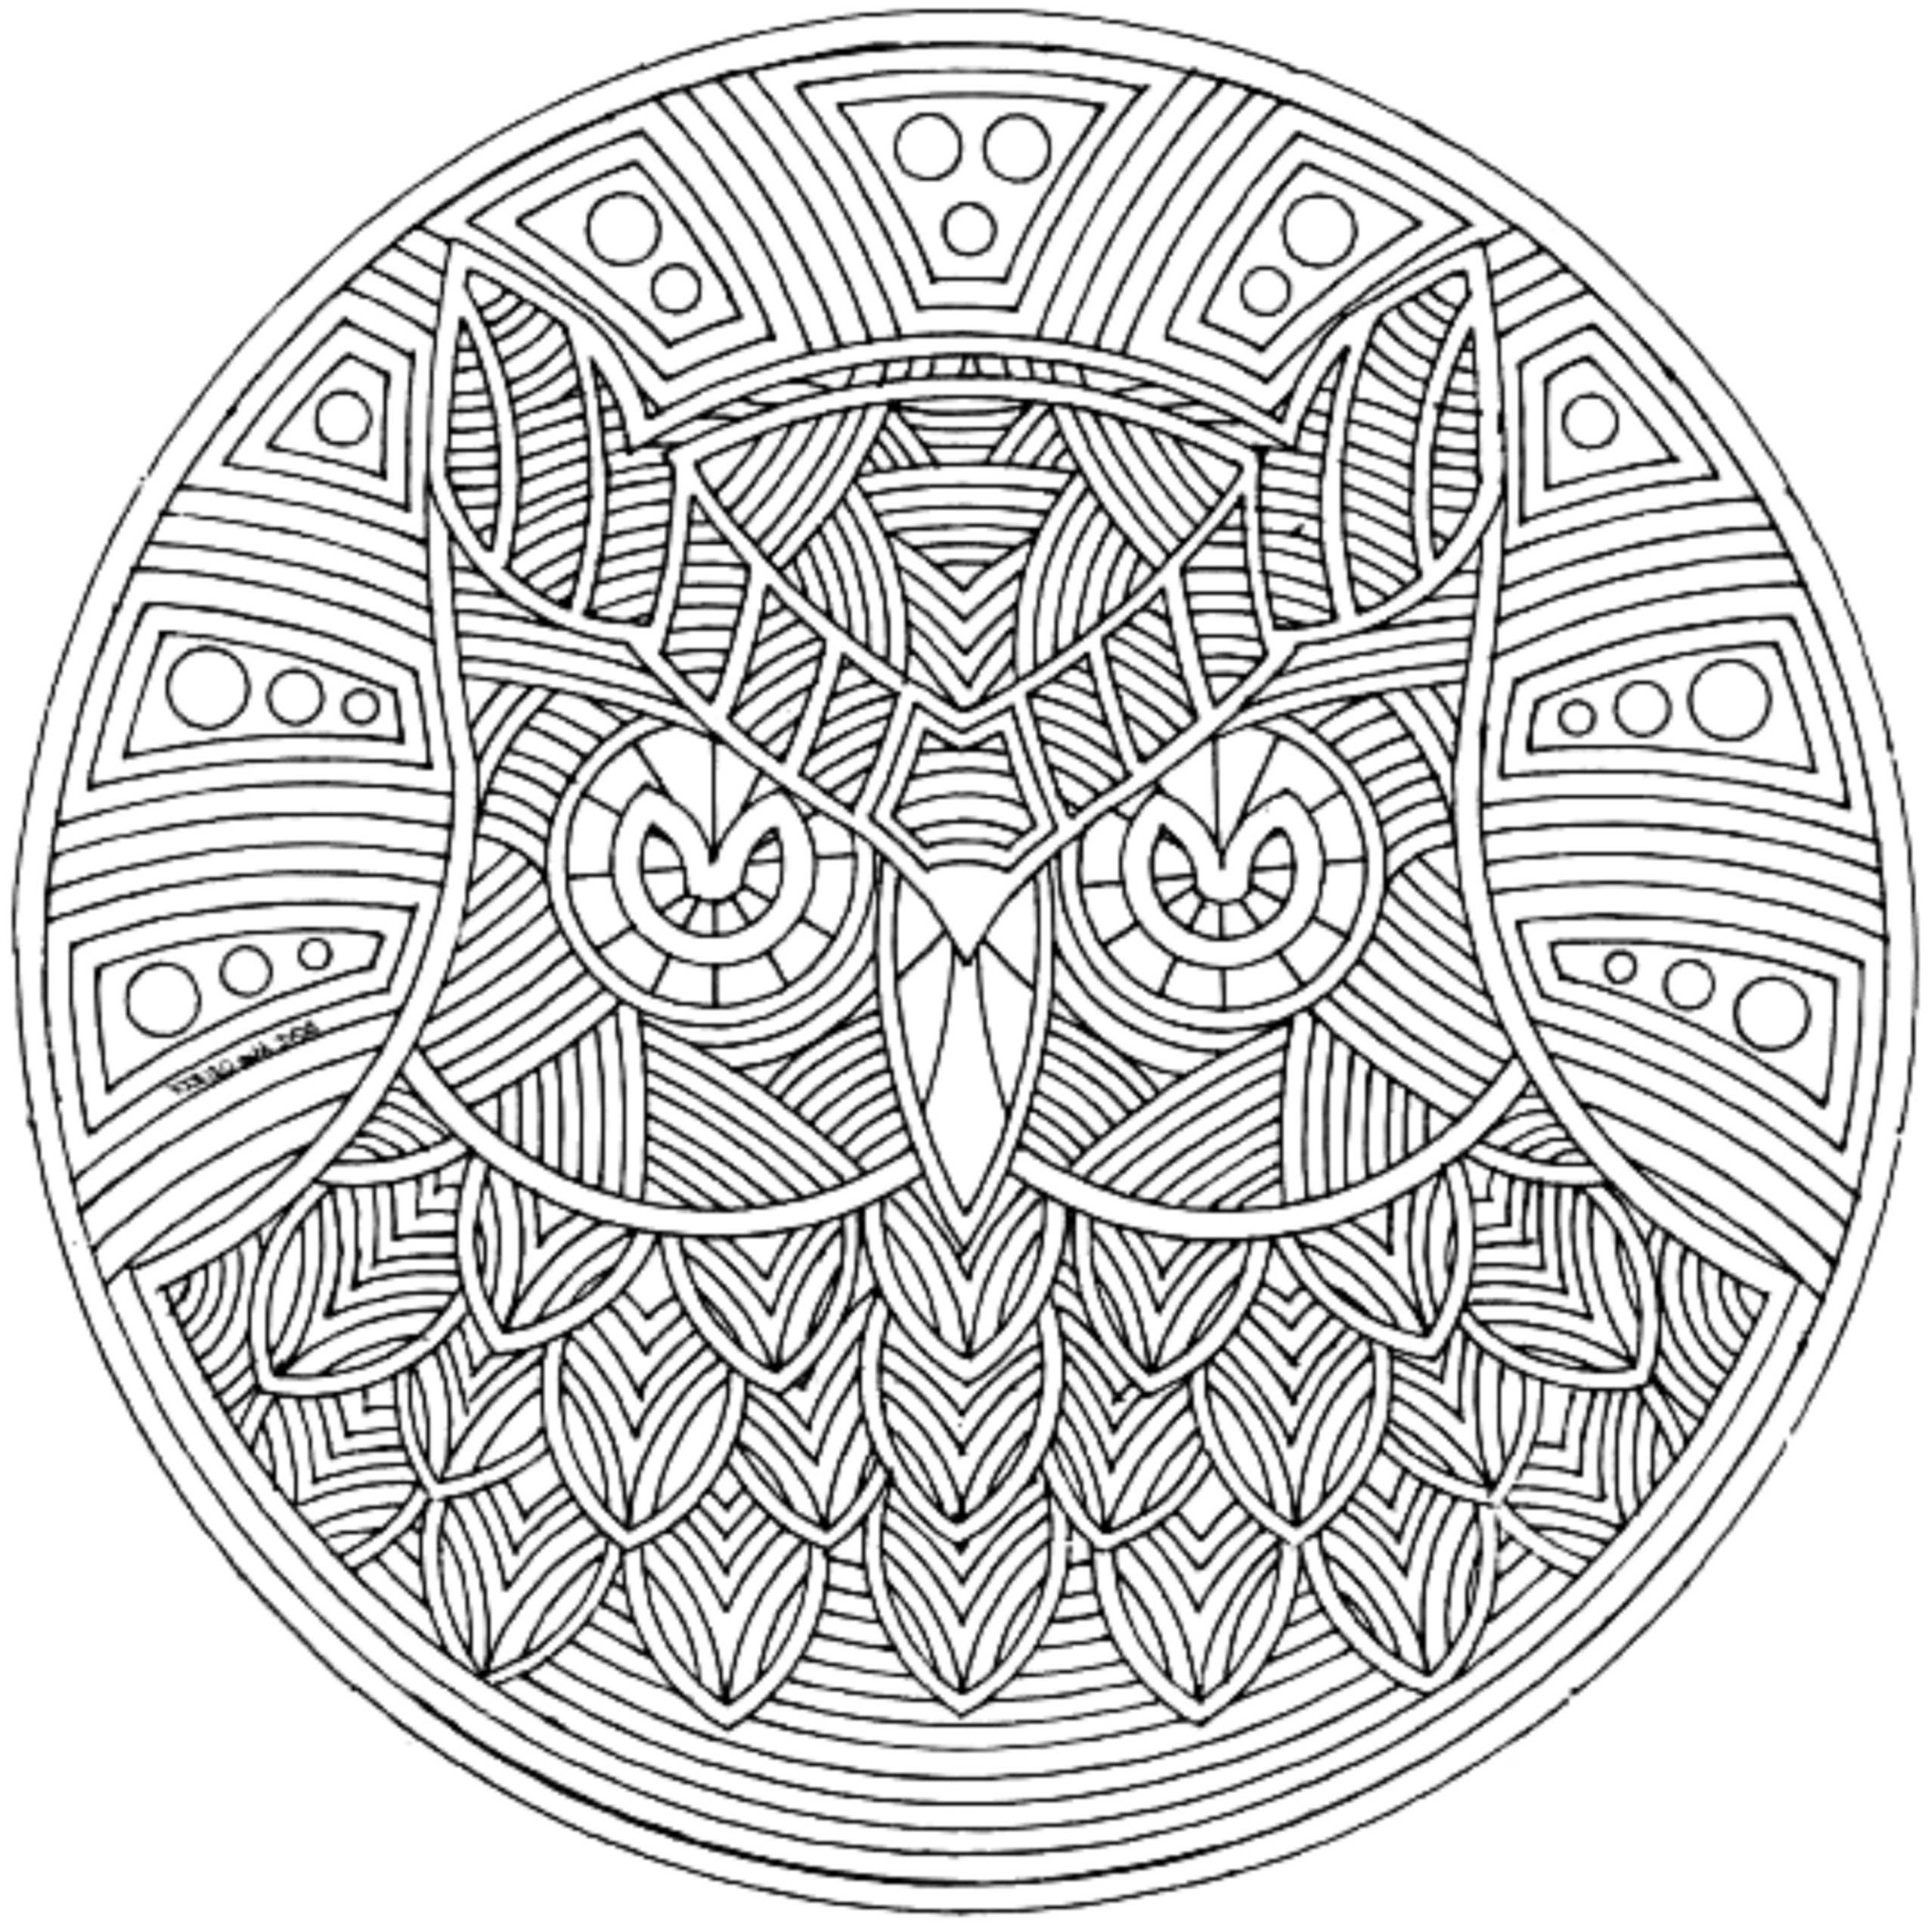 Print & Download - Complex Coloring Pages for Kids and Adults